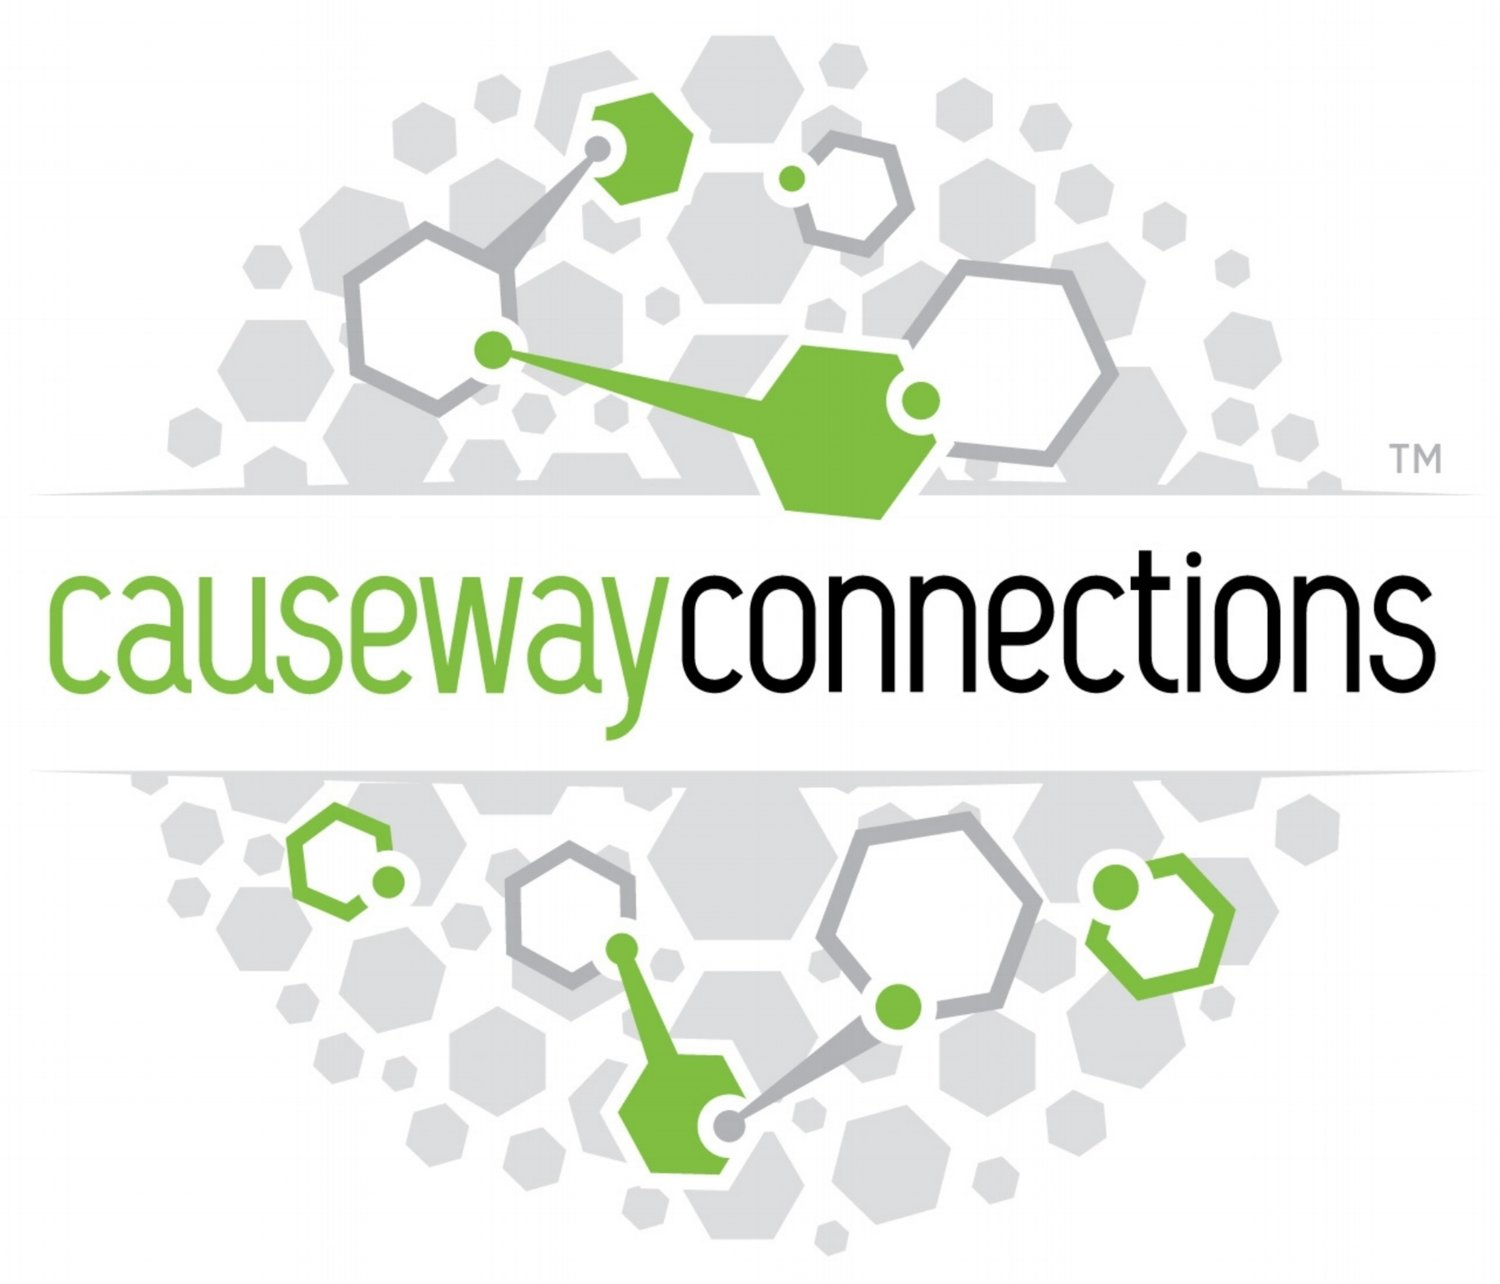 Causeway Connections